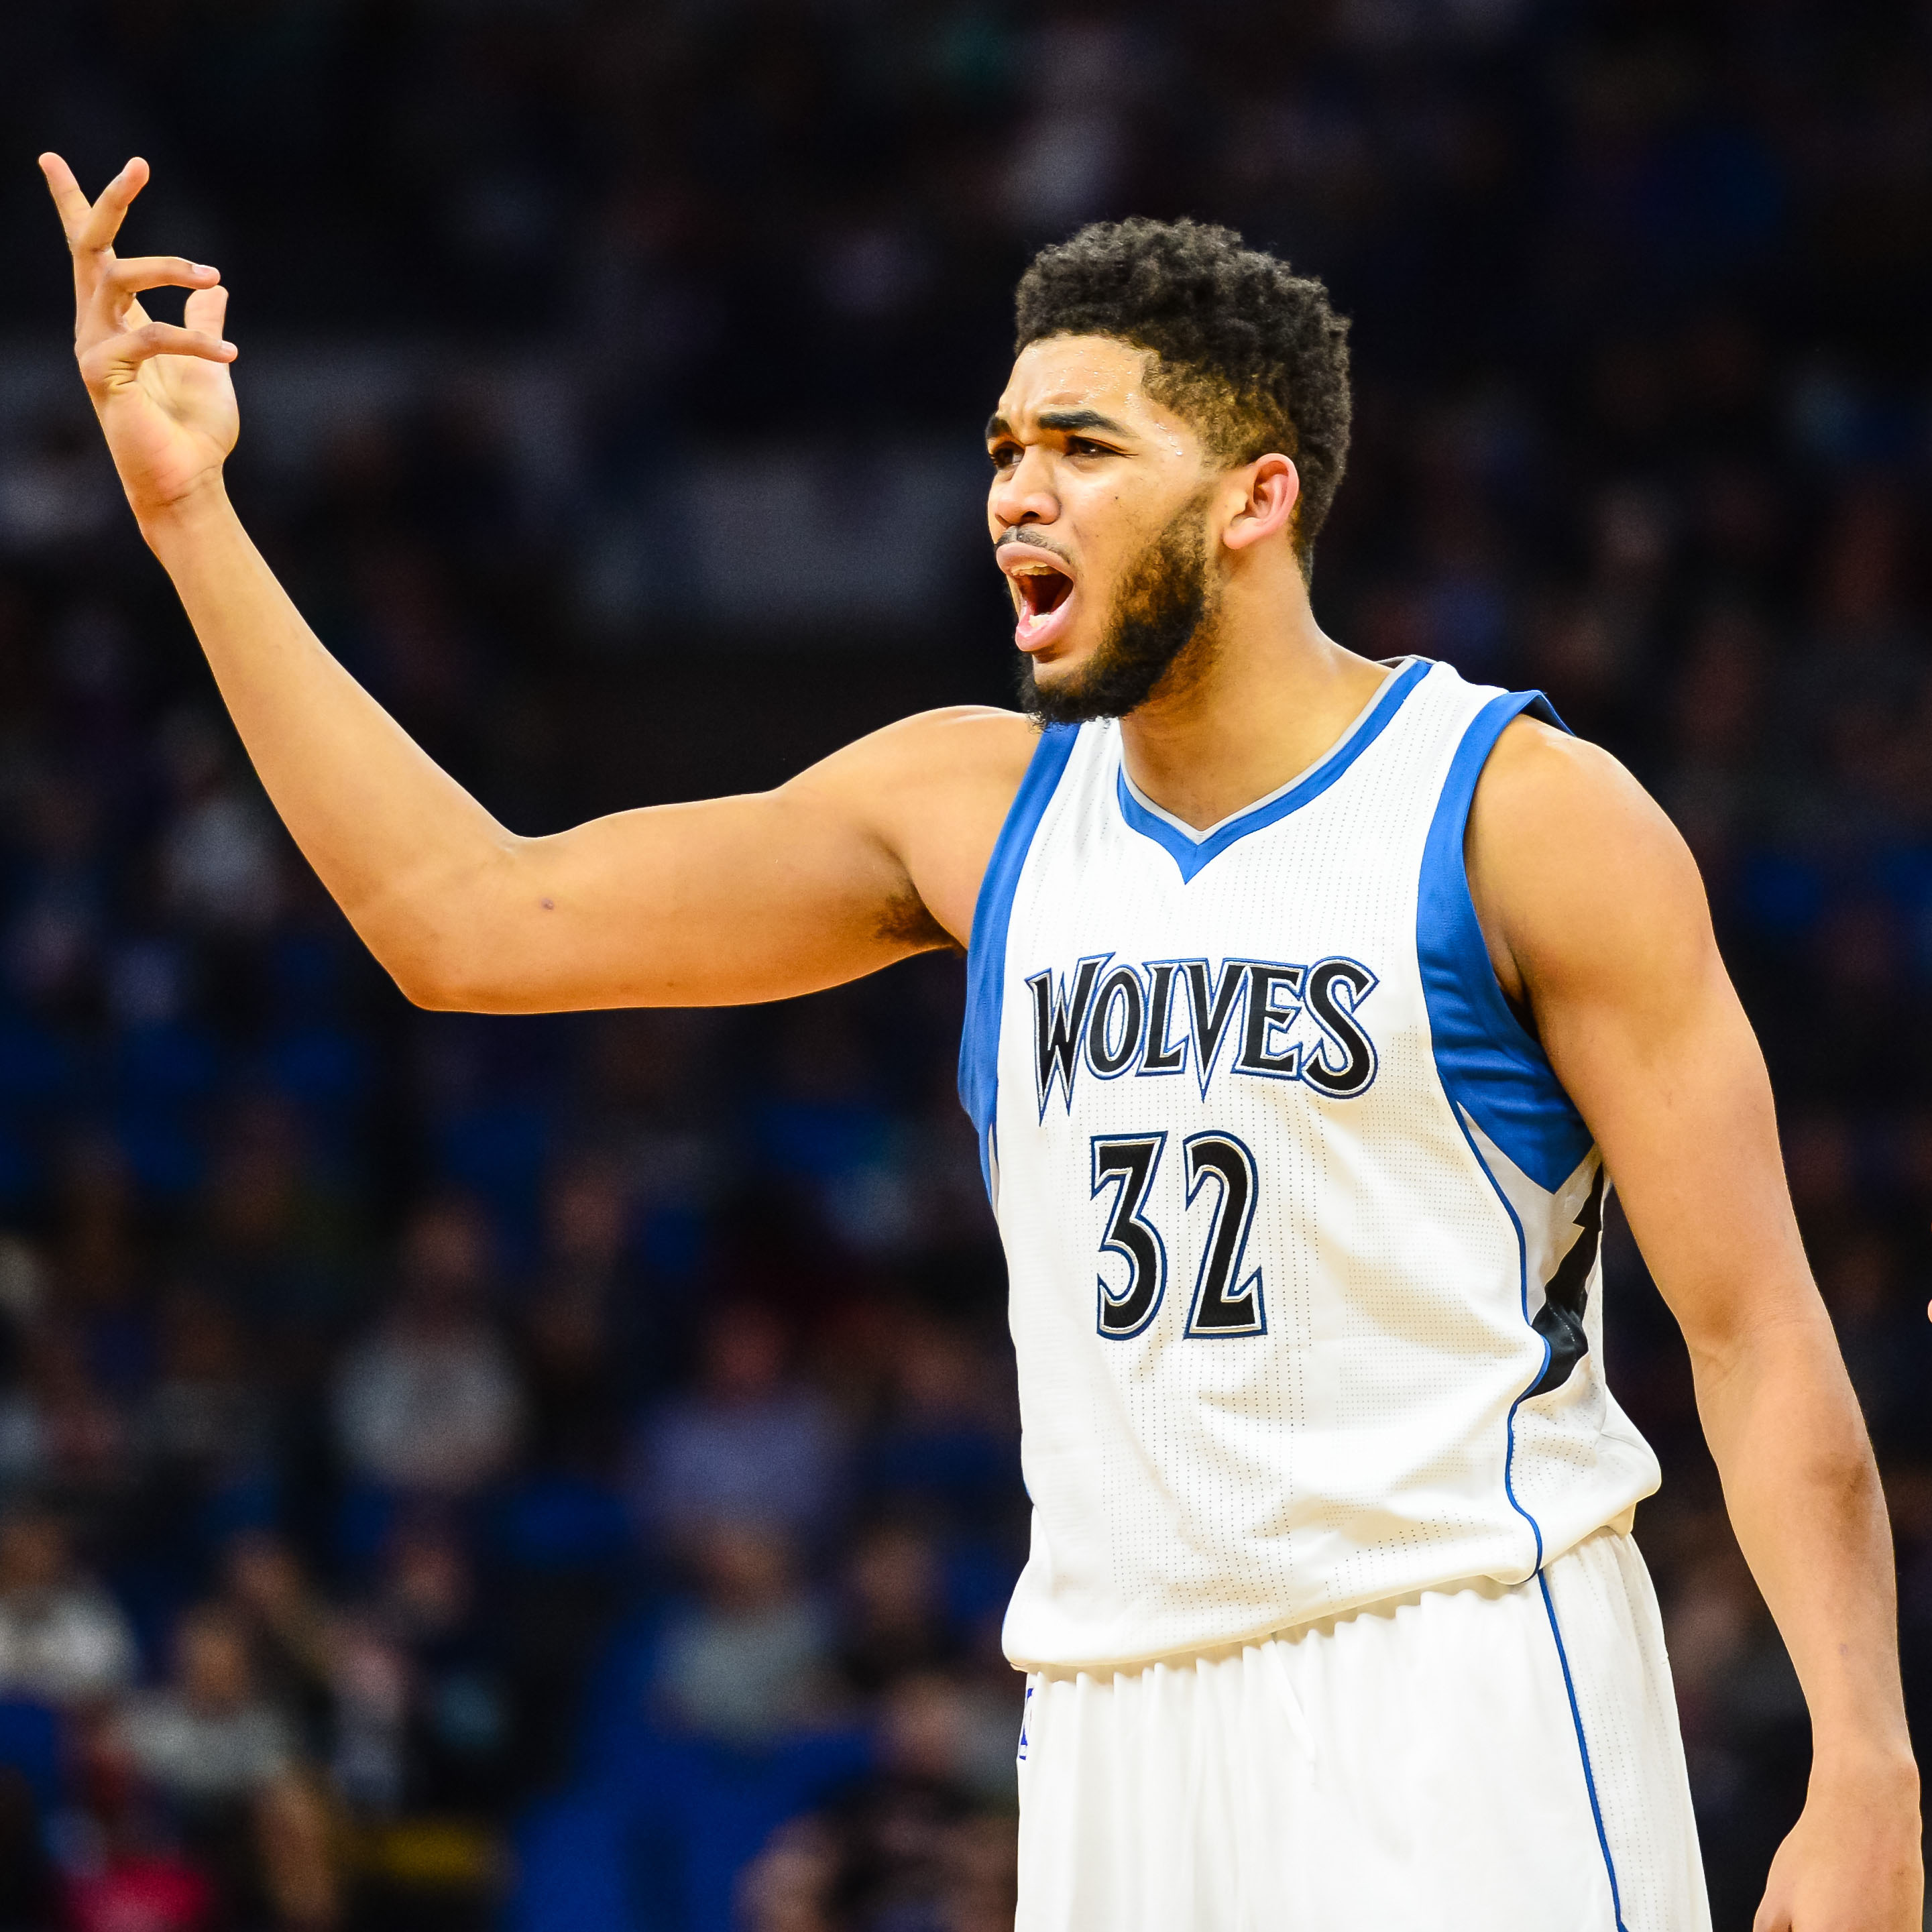 Feb 4, 2017; Minneapolis, MN, USA; Minnesota Timberwolves center Karl-Anthony Towns (32) reacts during the fourth quarter against the Memphis Grizzlies at Target Center. The Grizzlies won 107-99. Mandatory Credit: Jeffrey Becker-USA TODAY Sports